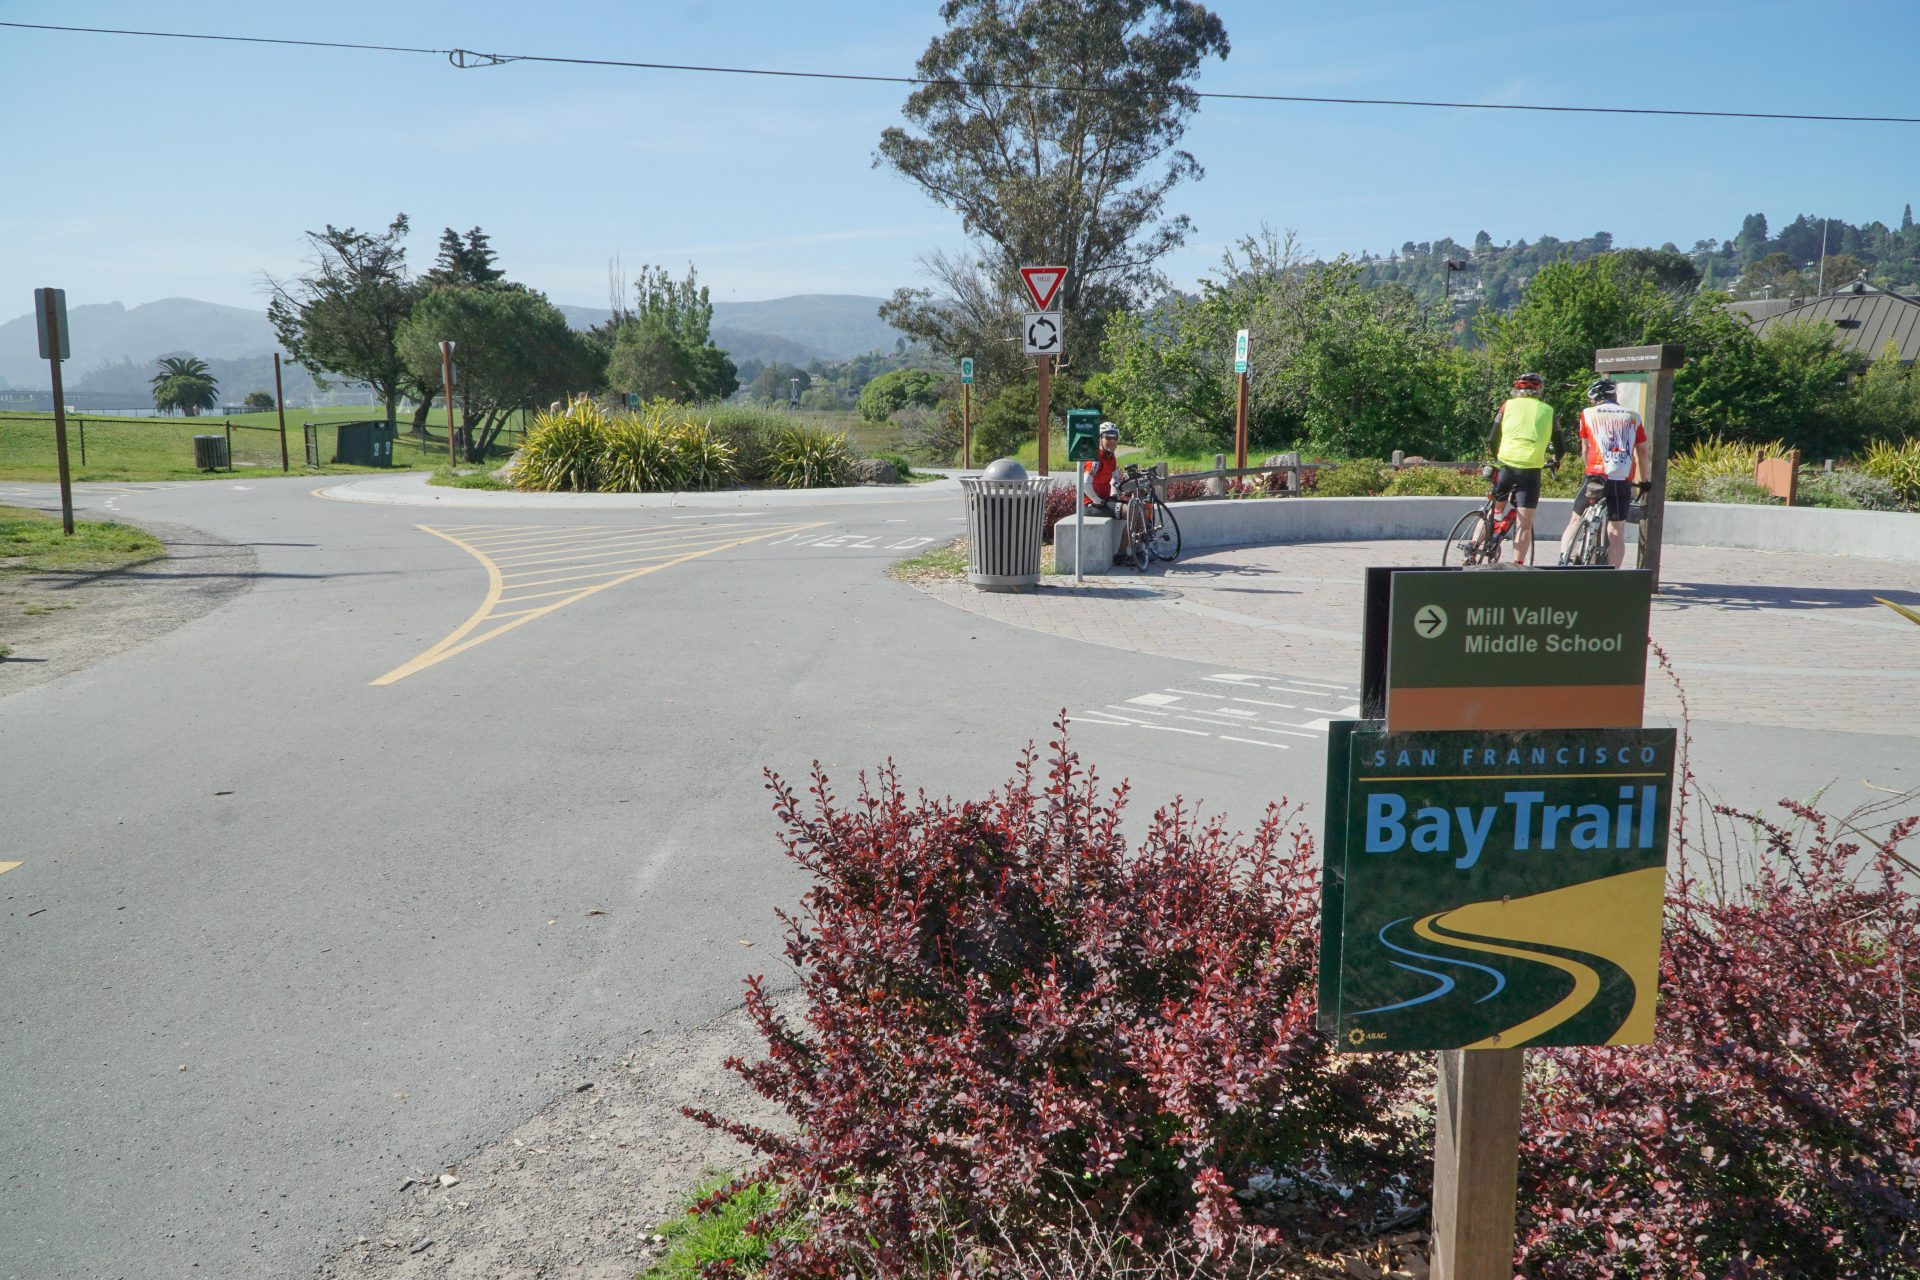 Bay Trail sign with bike path intersection beyond